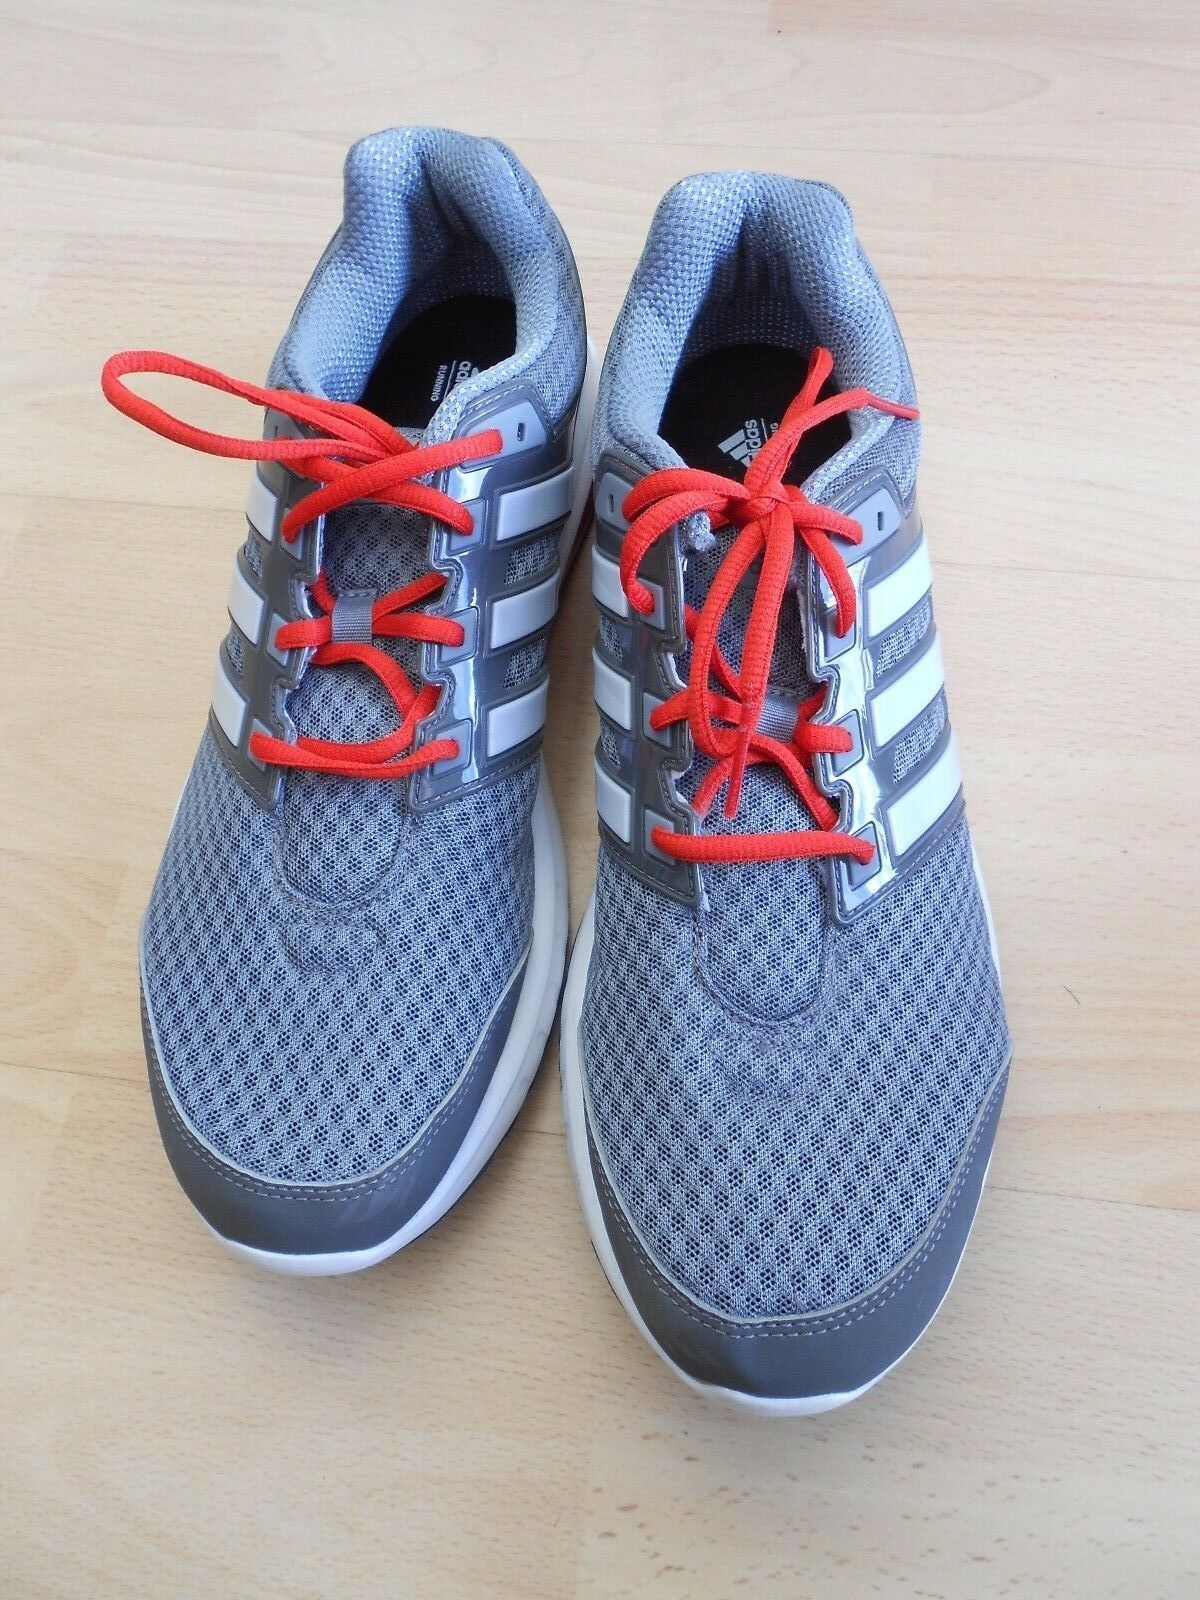 ADIDAS GALAXY ELITE  RUNNING  TRAINERS UK SIZE 12 - VGC  outlet online store